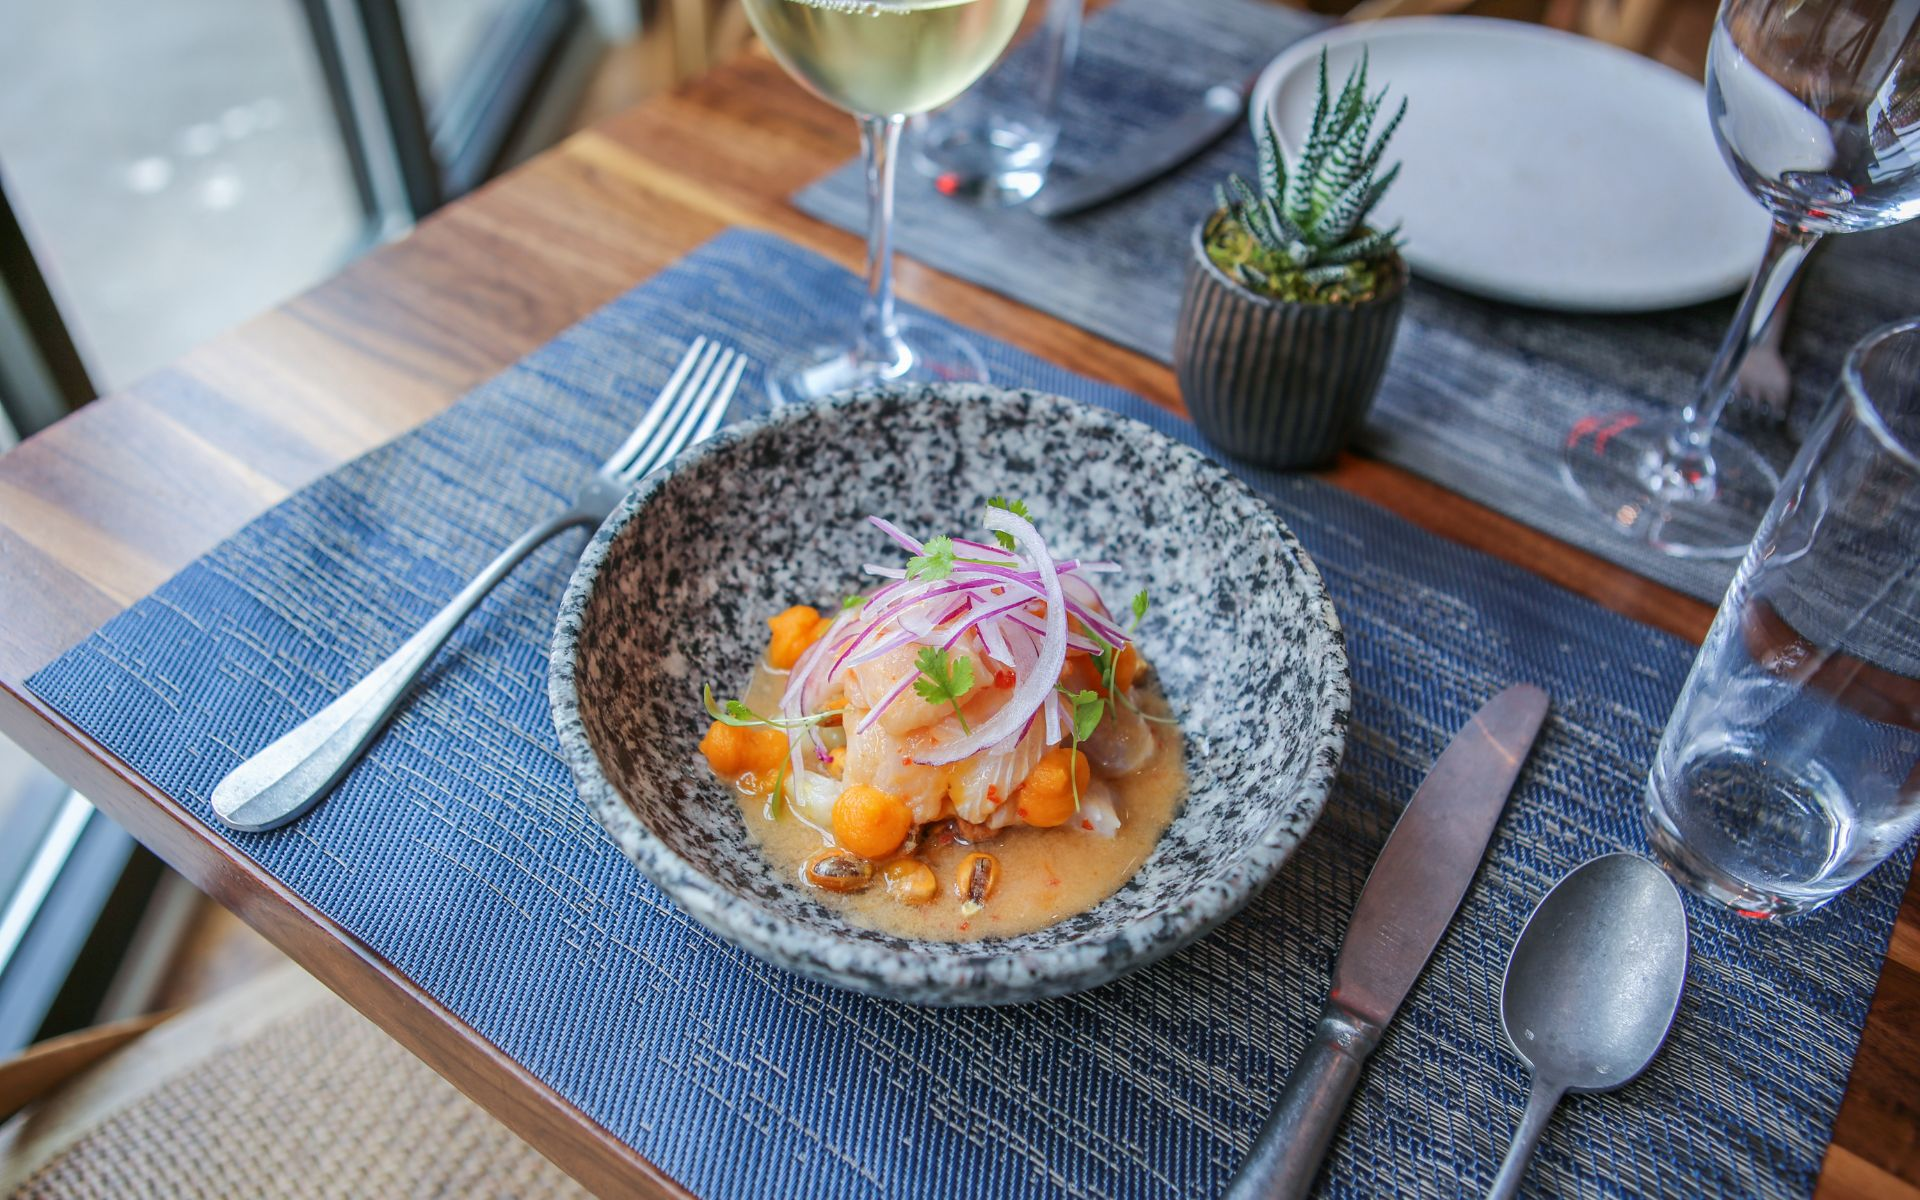 A bowl of ceviche resting on an orange sauce and topped with red onions